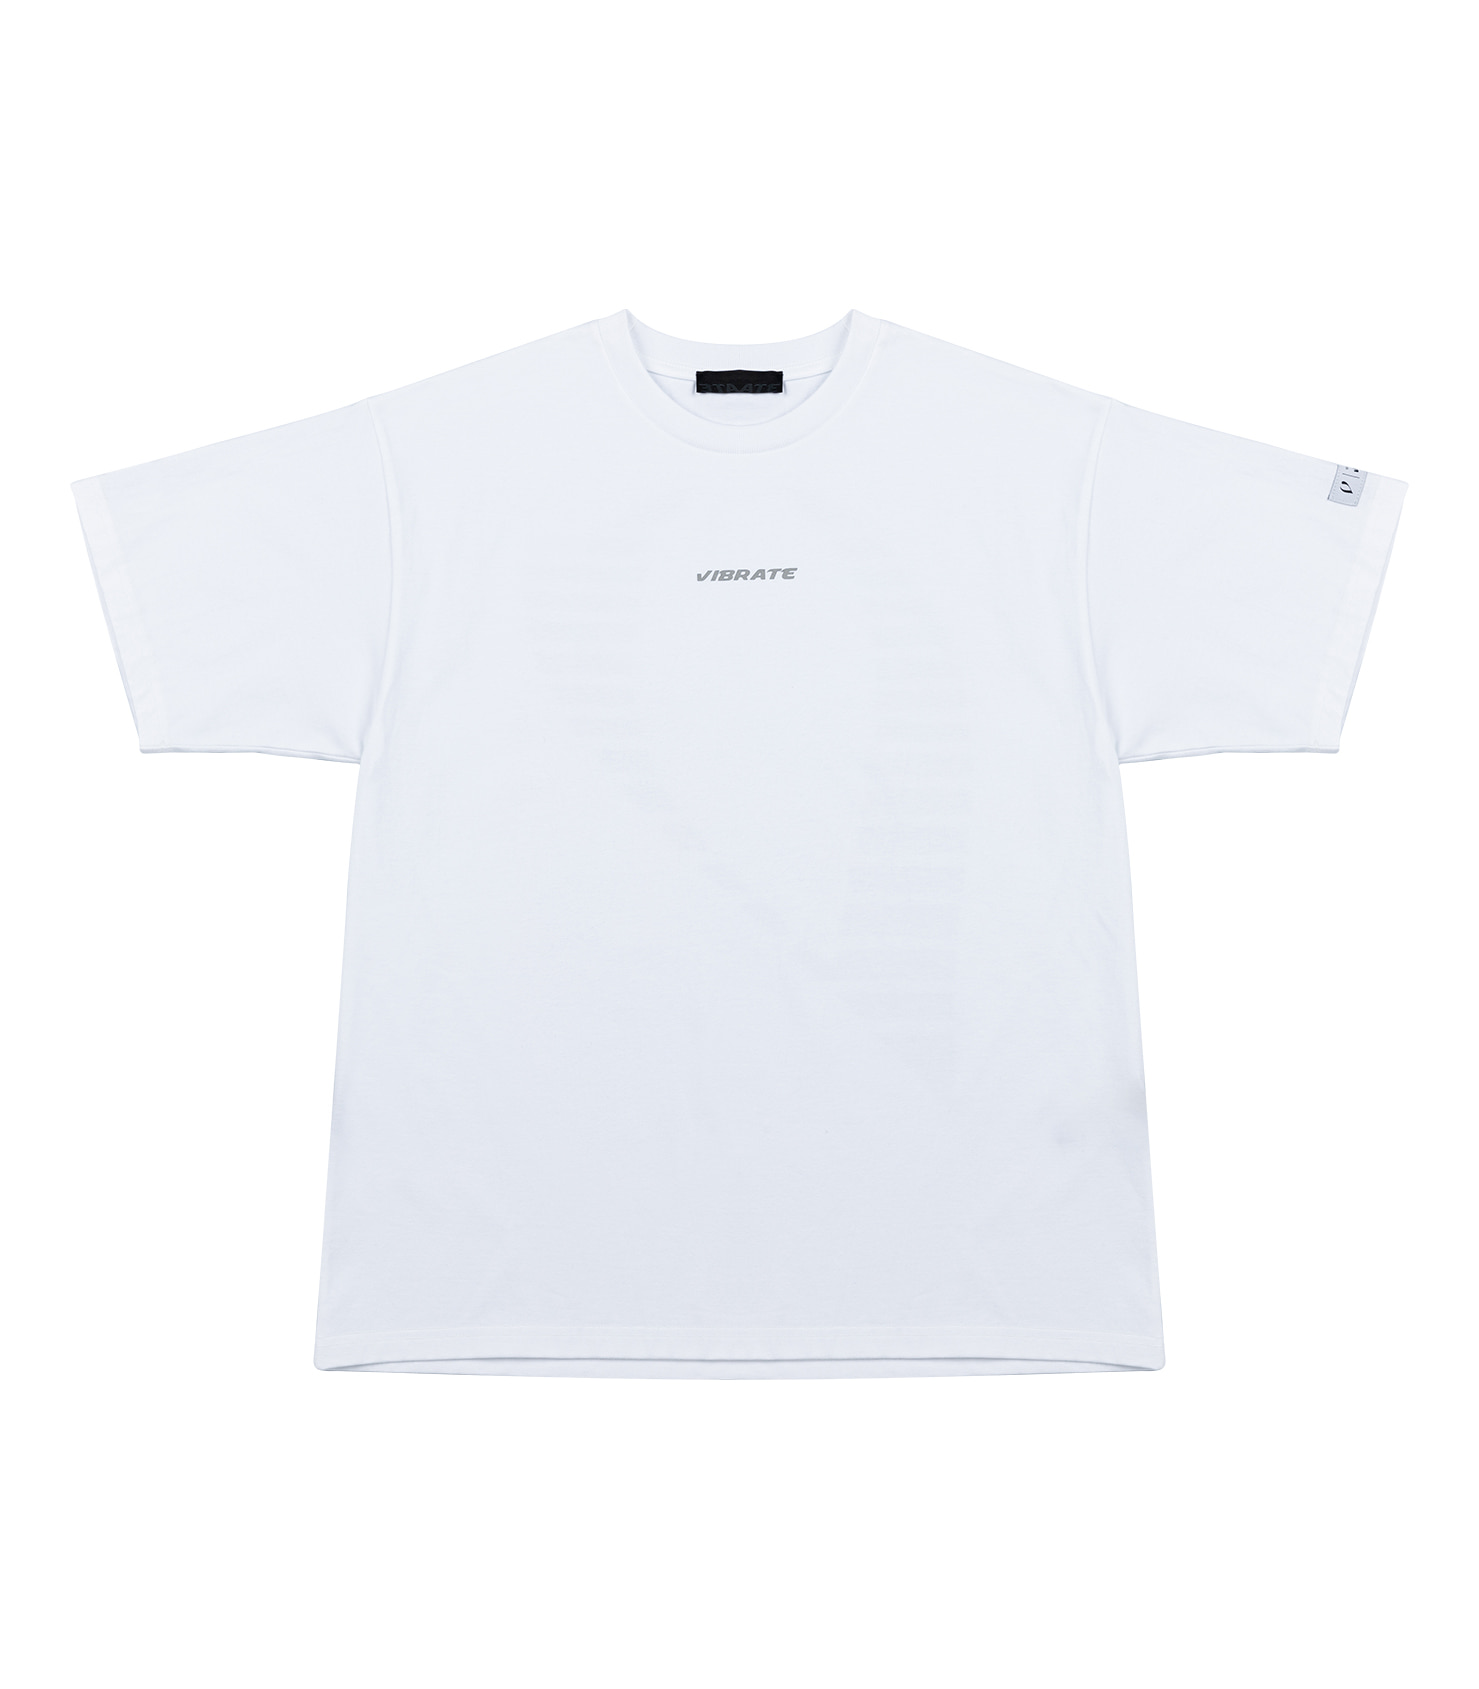 V FLASH M002 T-SHIRT (WHITE)